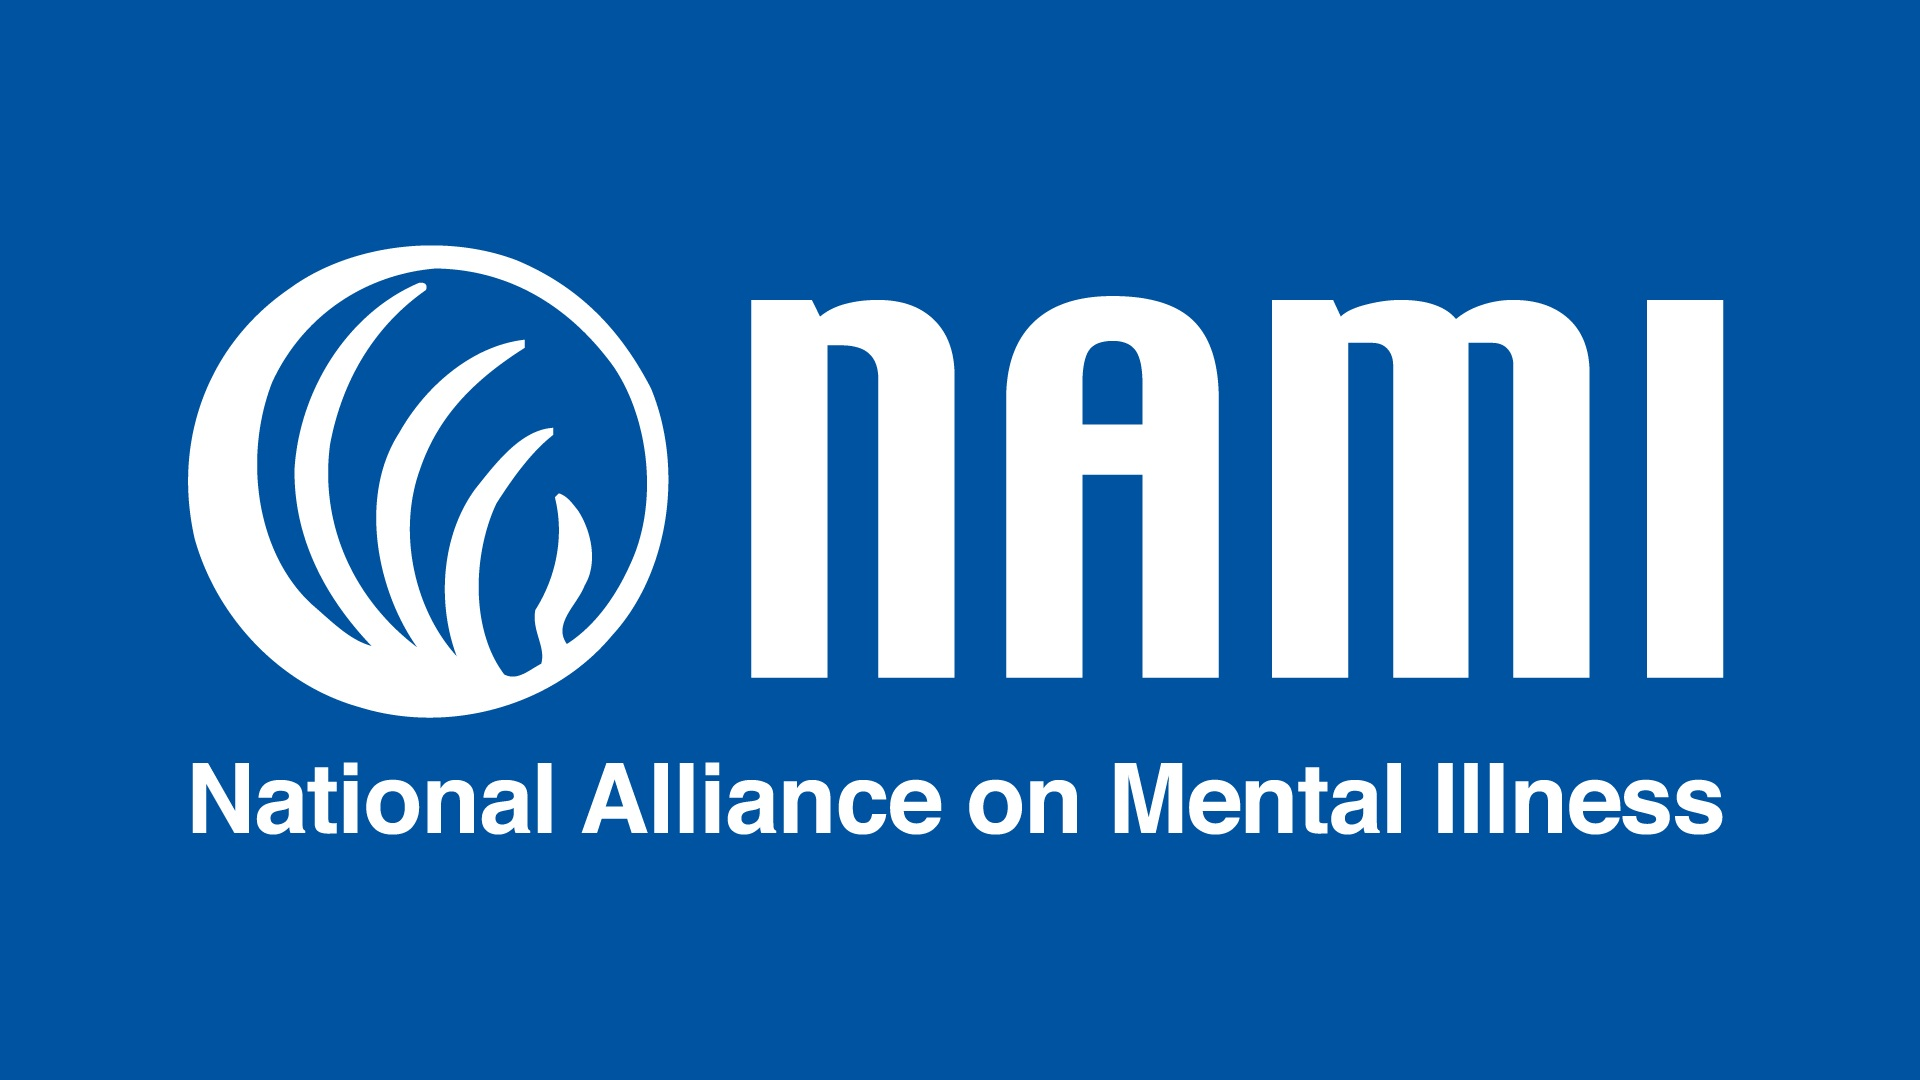 Presented by Interfaith Mental Health Coalition